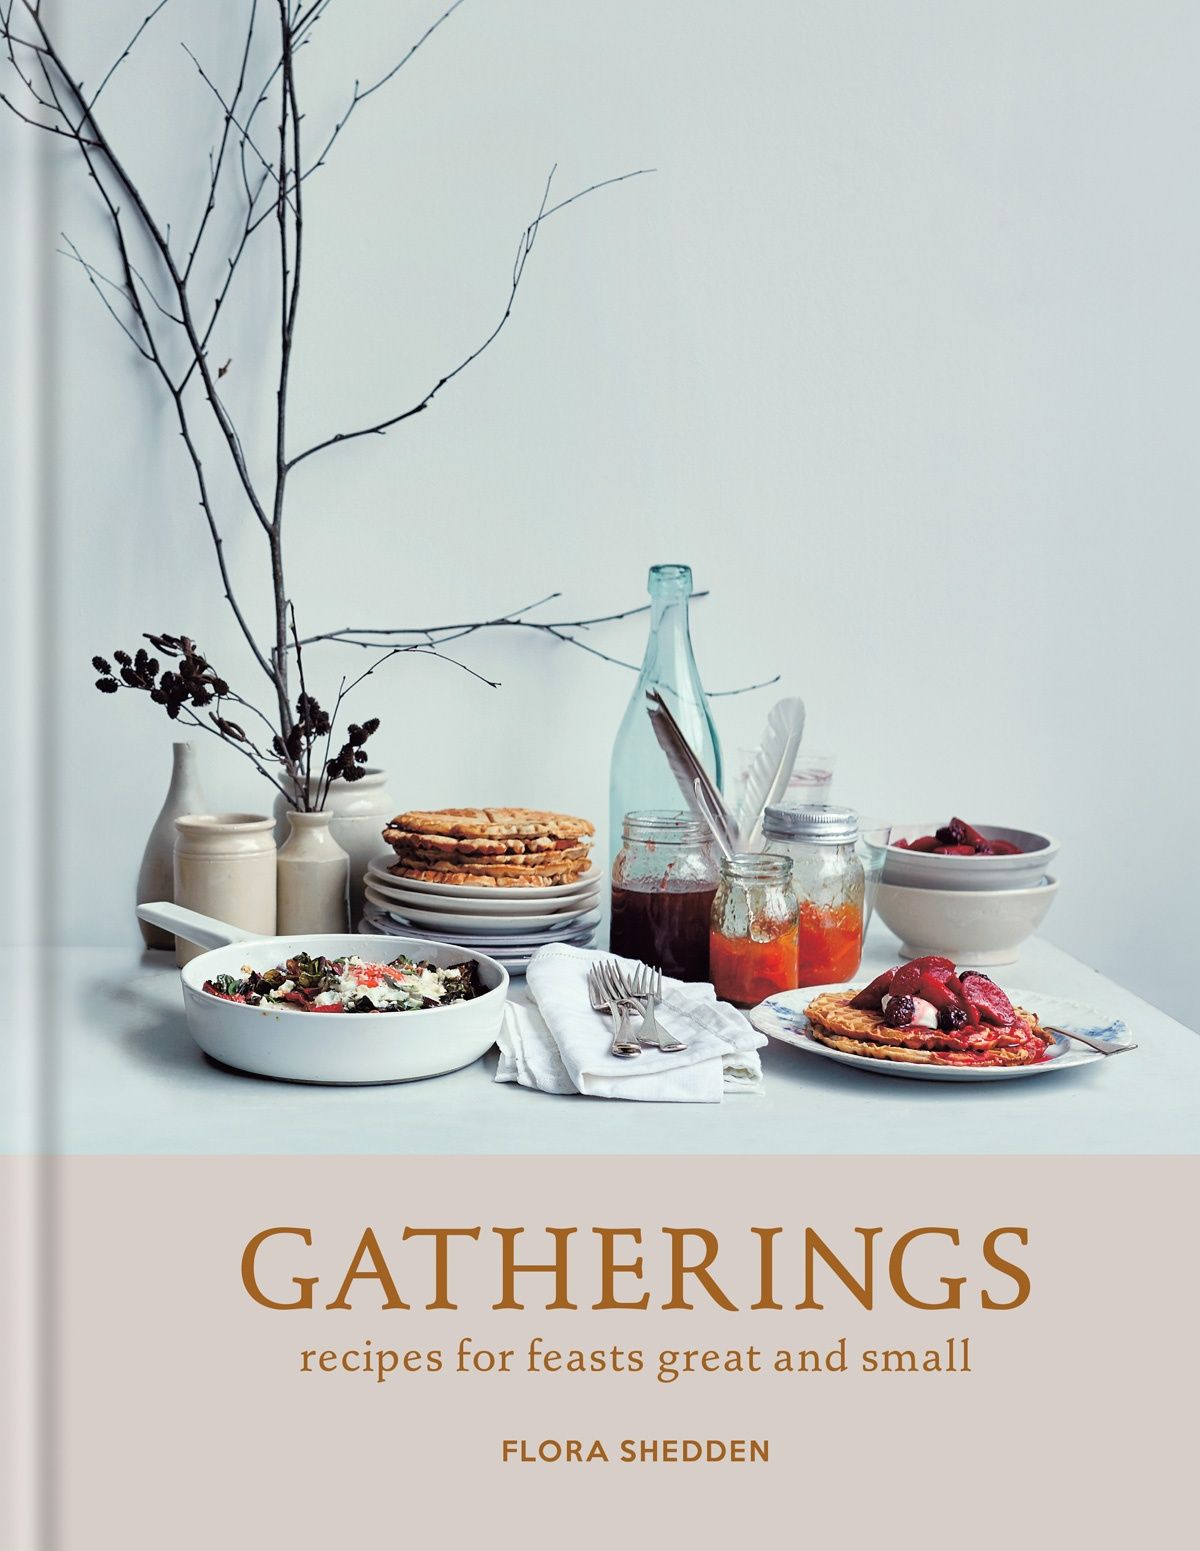 Gatherings by Flora Shedden. This is a beautiful book, with recipes that balance the relaxed with the inventive. Above all, they have the authentic sense of coming out of a real home kitchen. I have littered my book with post-it notes, and choosing which recipe to highlight for you was not an easy task. But since the Balsamic Onion Soda Bread is the first recipe I plan to try, it seemed only right to choose that one.